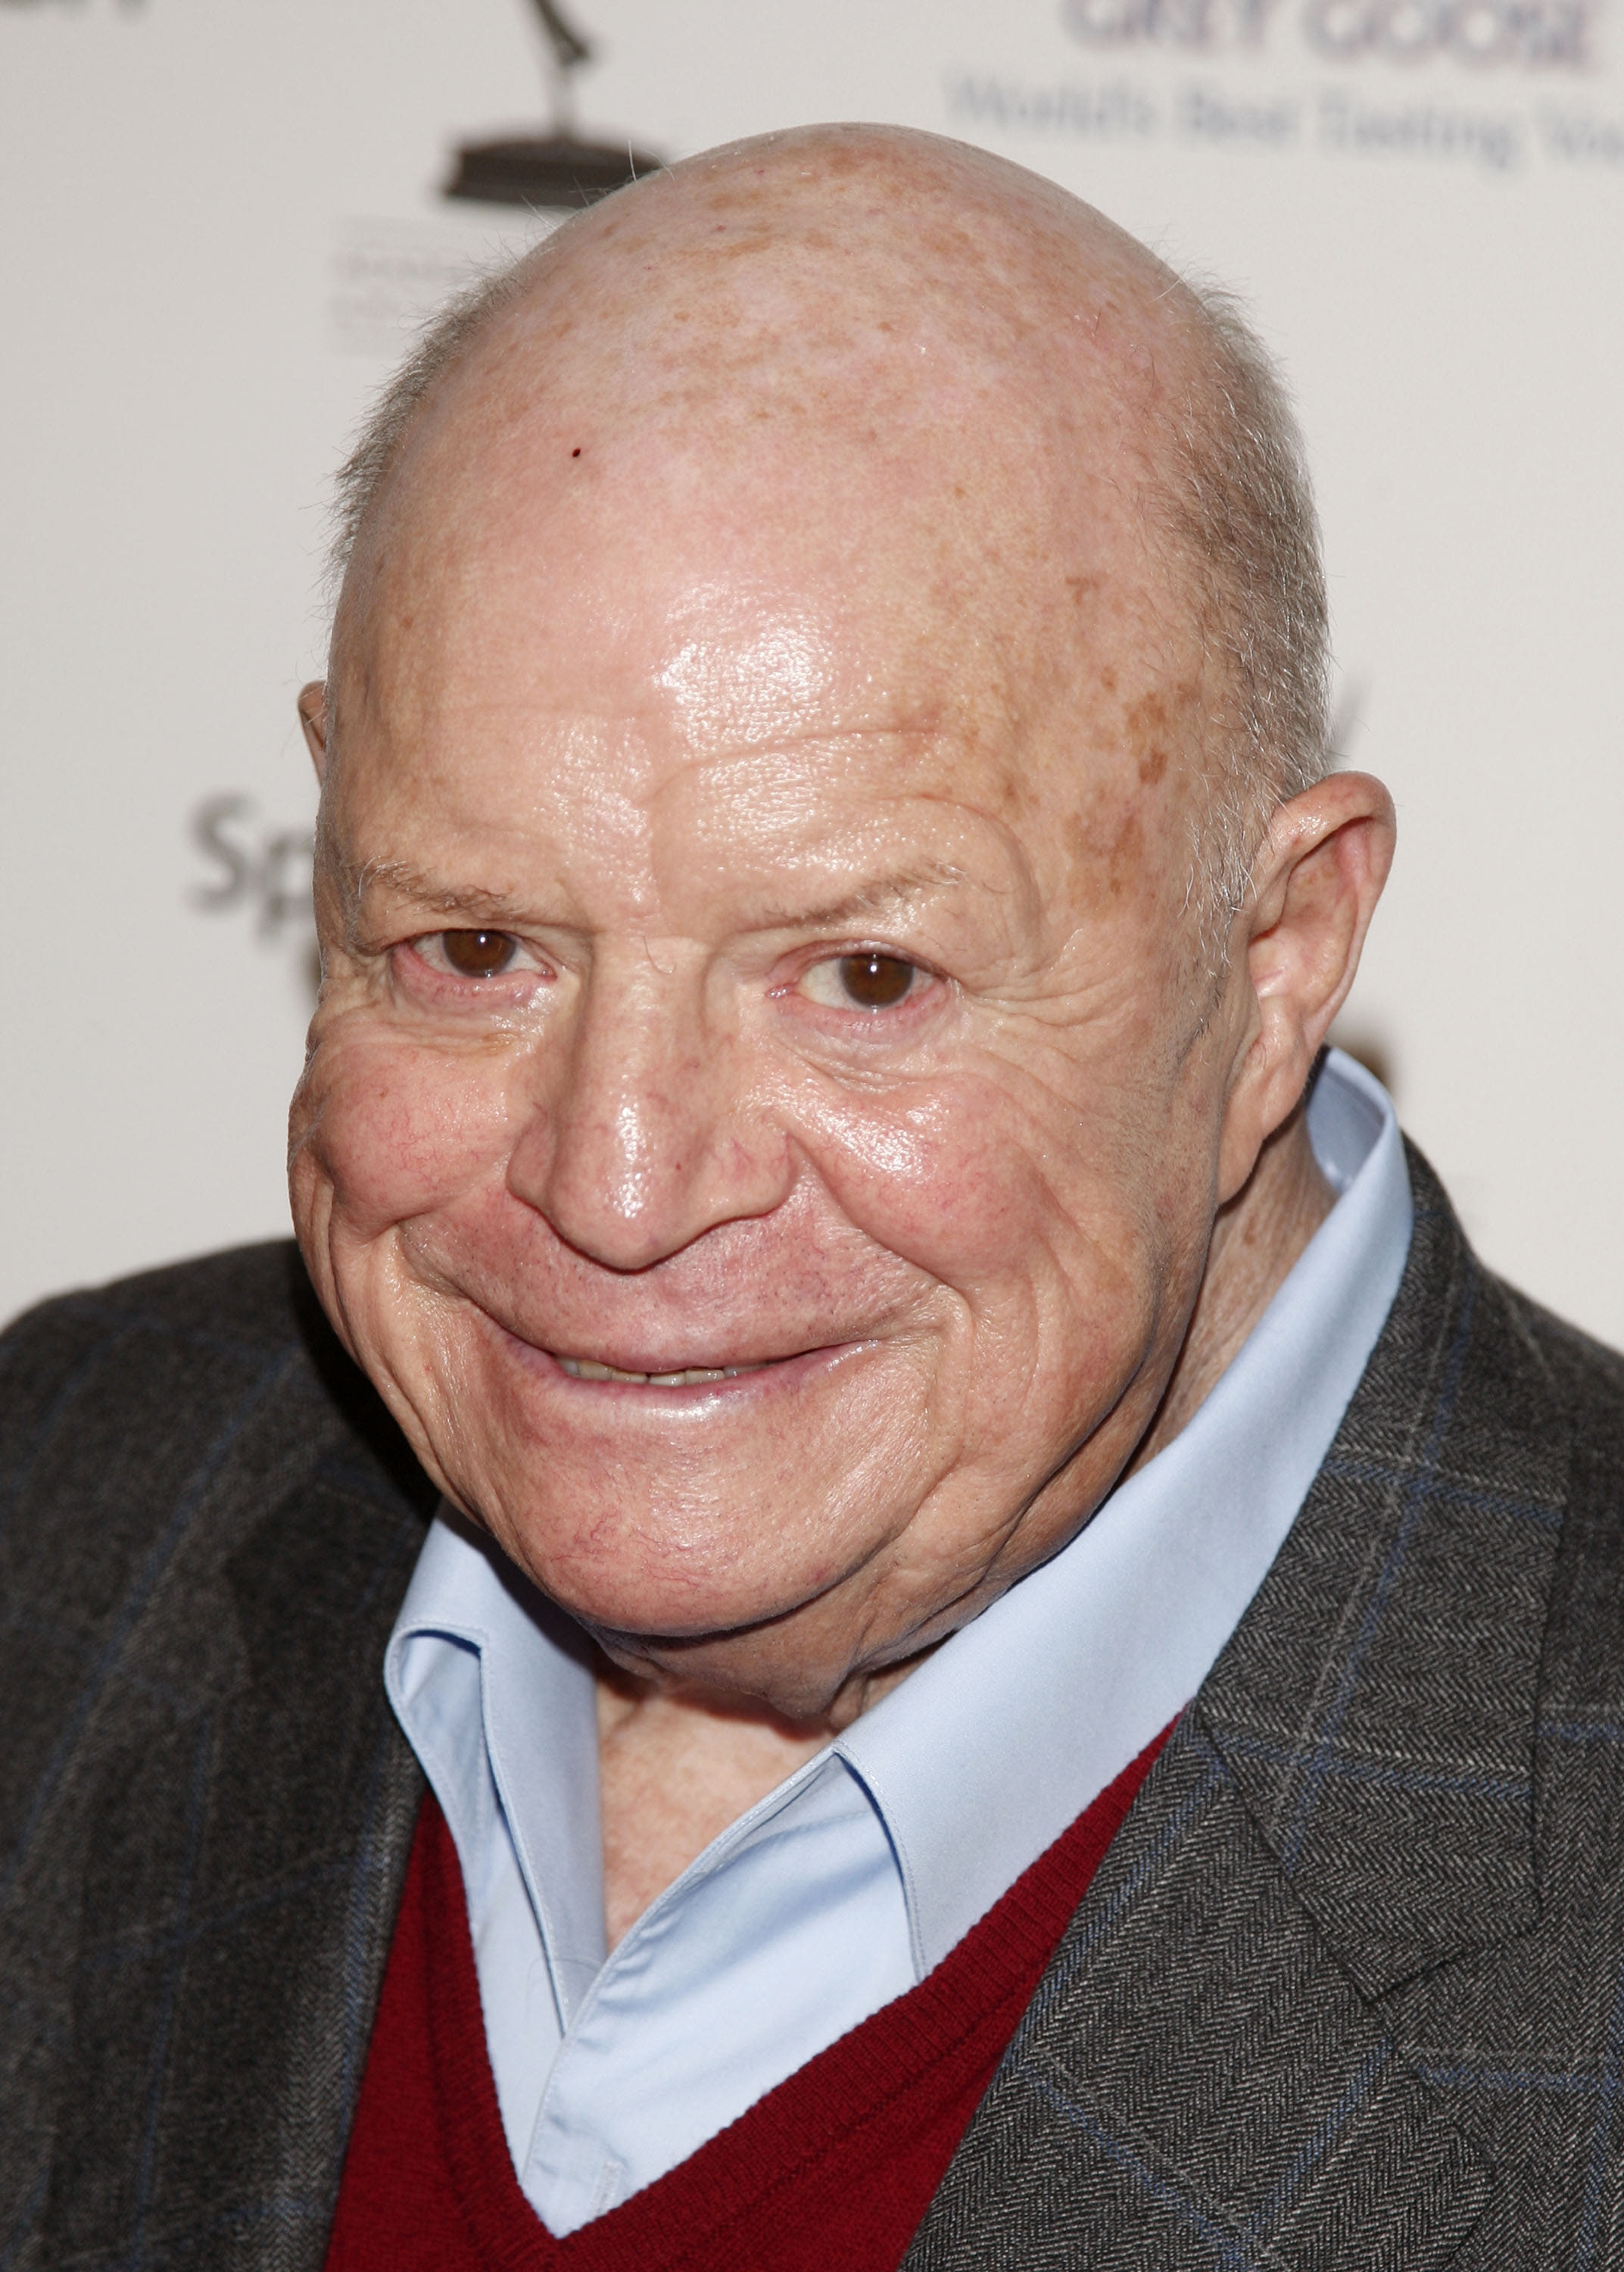 Carnival of Wealth, Don Rickles Edition